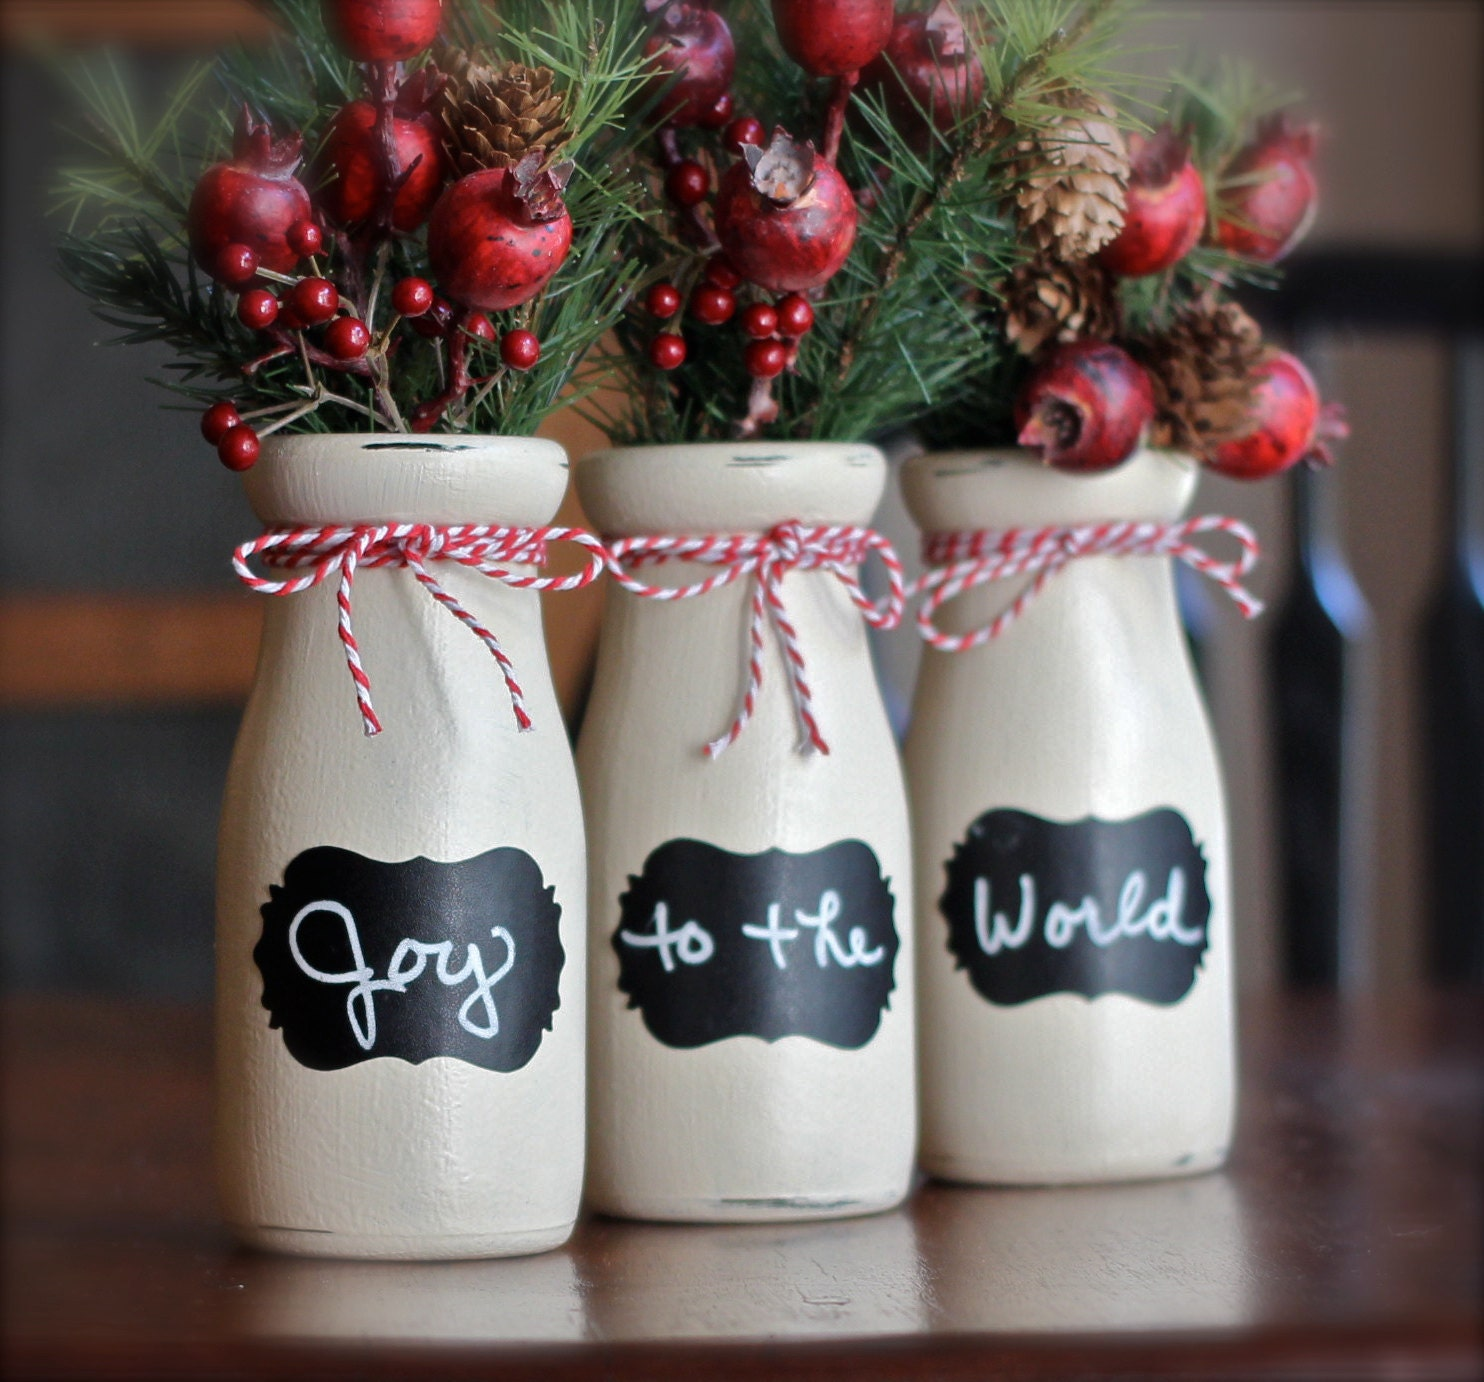 Rustic Christmas Decor Rustic Christmas Decorations Vase